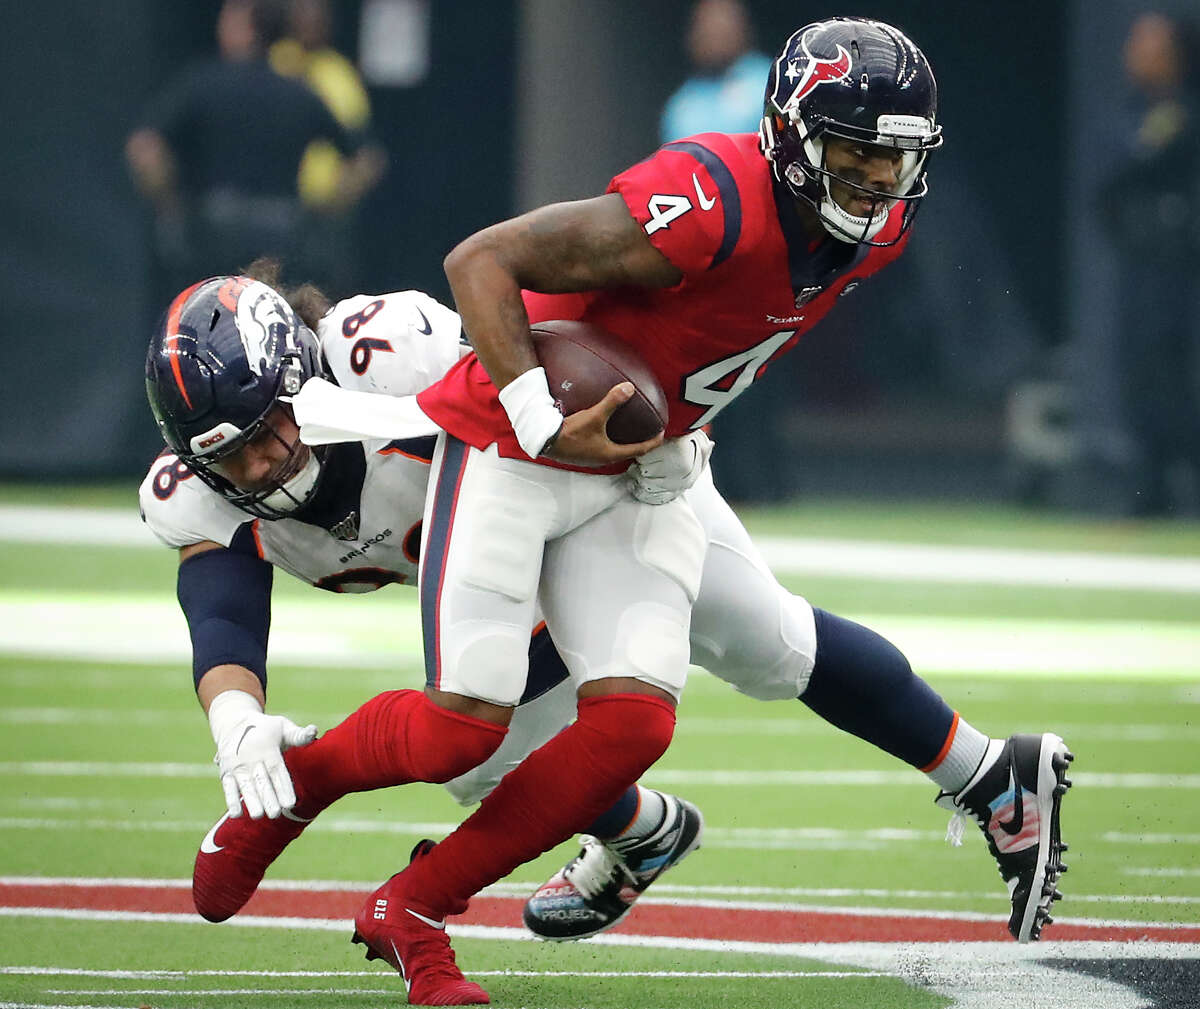 Denver Broncos nose tackle Mike Purcell (98) forces Houston Texans quarterback Deshaun Watson (4) out of the pocket during the fourth quarter of an NFL football game at NRG Stadium on Sunday, Dec. 8, 2019, in Houston.